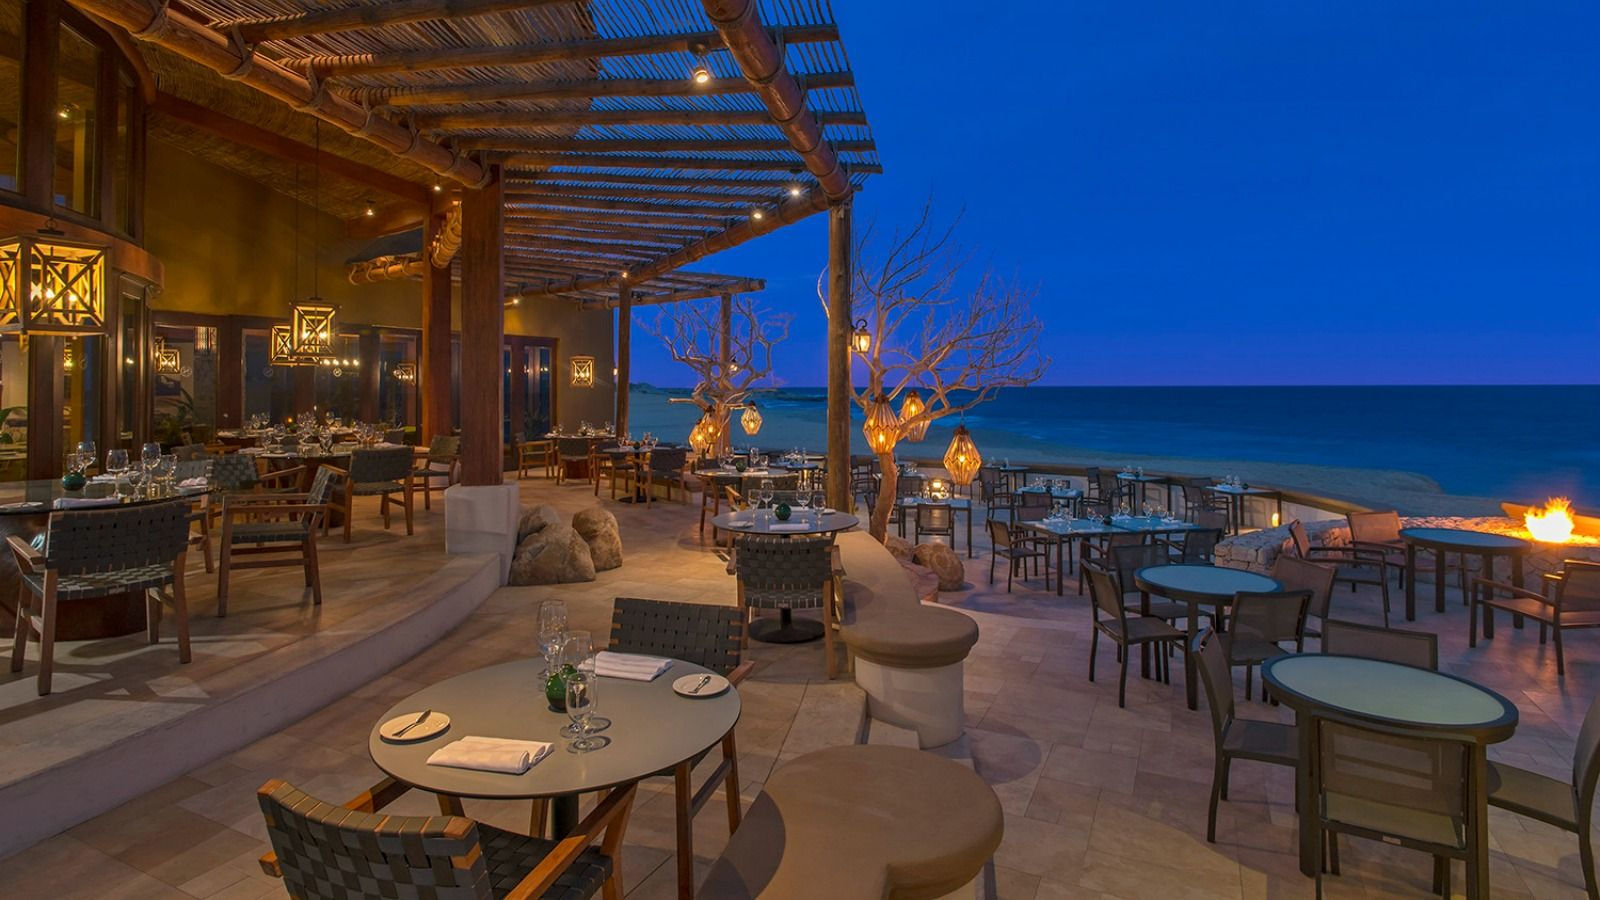 De Cortez Grill and Restaurant - Sheraton Grand Los Cabos